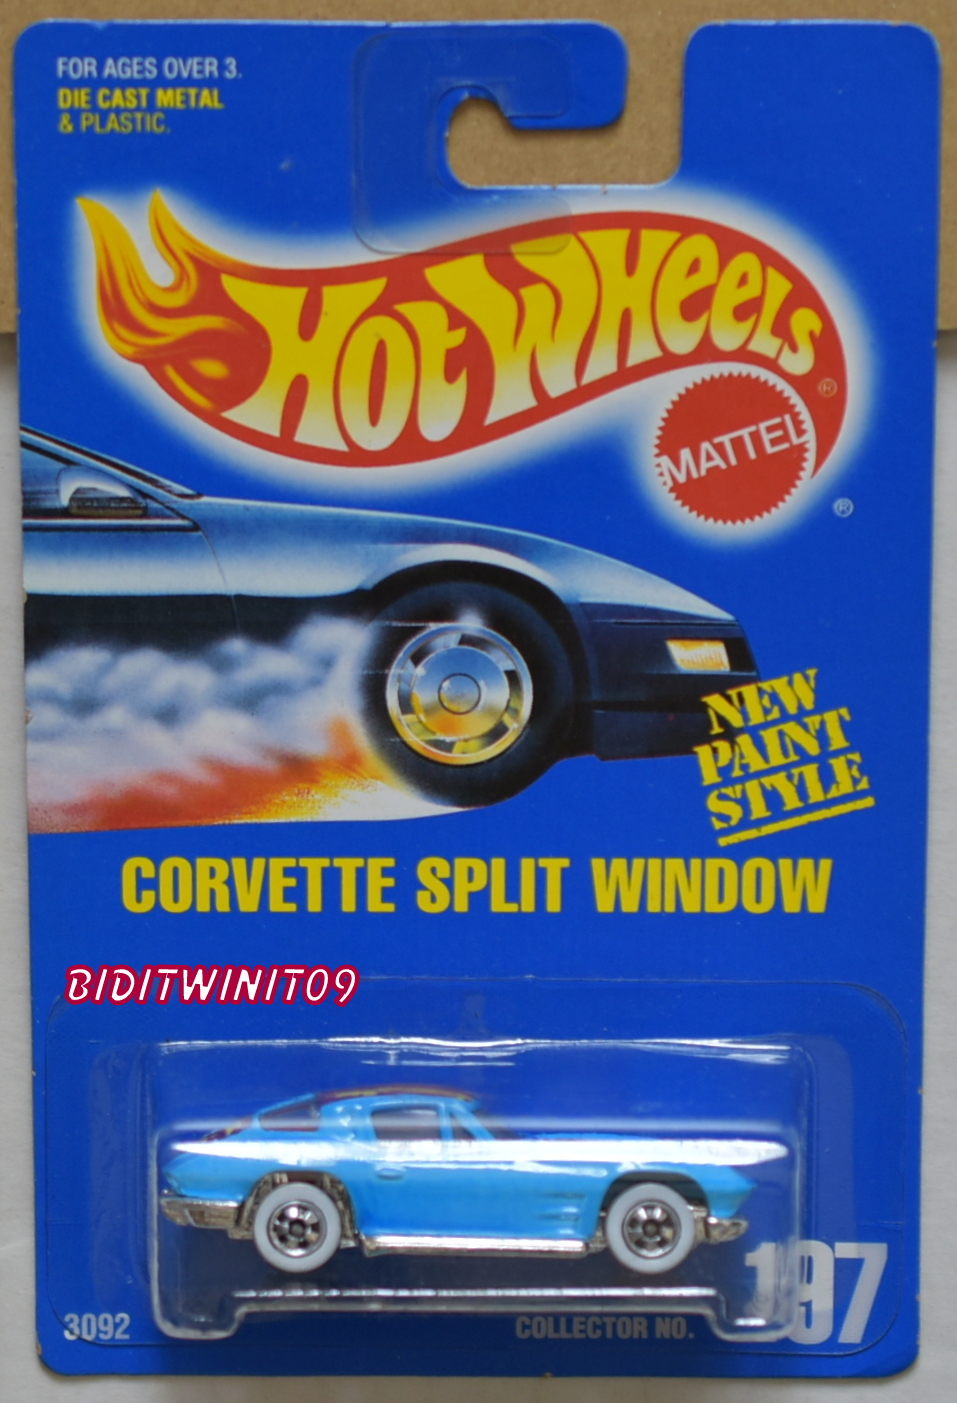 HOT WHEELS 1991 BLUE CARD CORVETTE SPLIT WINDOW #197 LIGHT BLUE E+